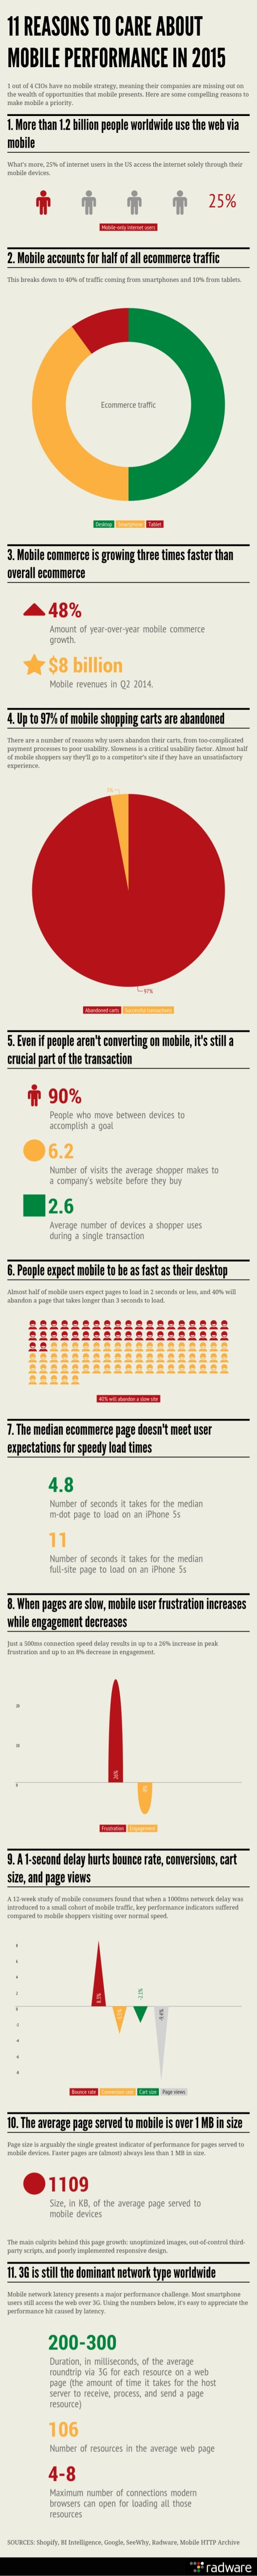 ll REASBNS T0 CARE ABllllT MOB| lE PERFBRMANBE IN 2015  '1 out of4 CIOs have no mobile strategy.  meaning their companies ...